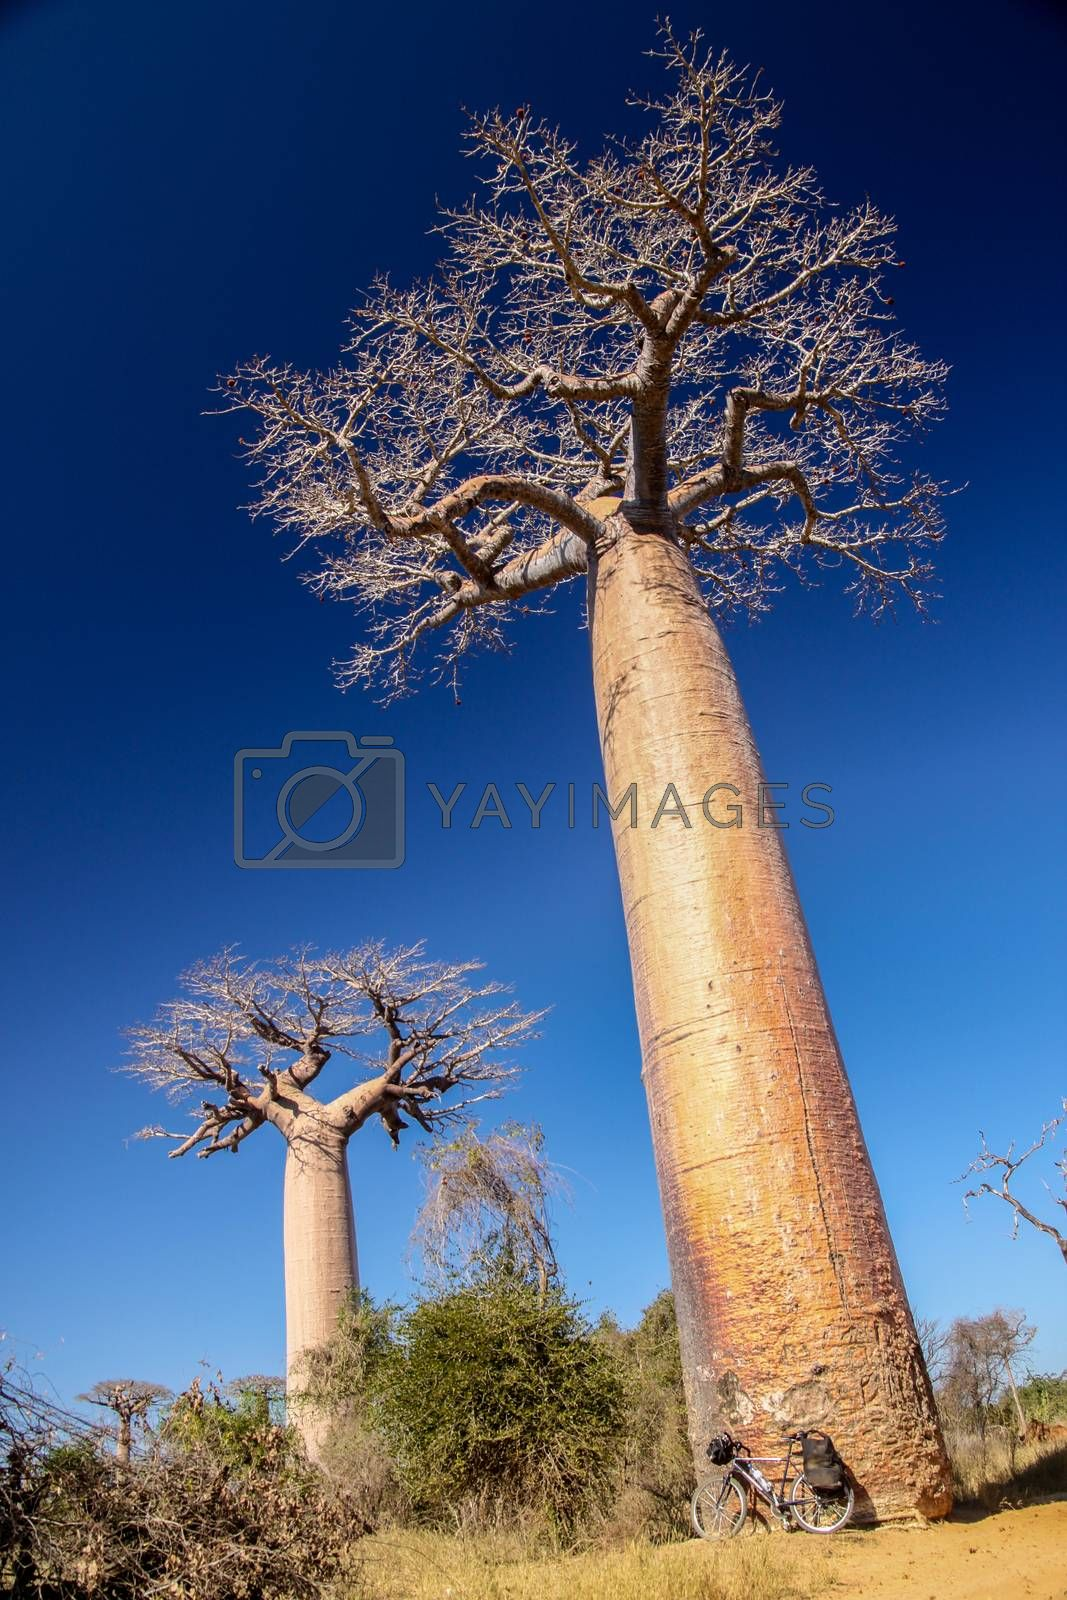 Royalty free image of Bicycle under the Baobab by pawopa3336